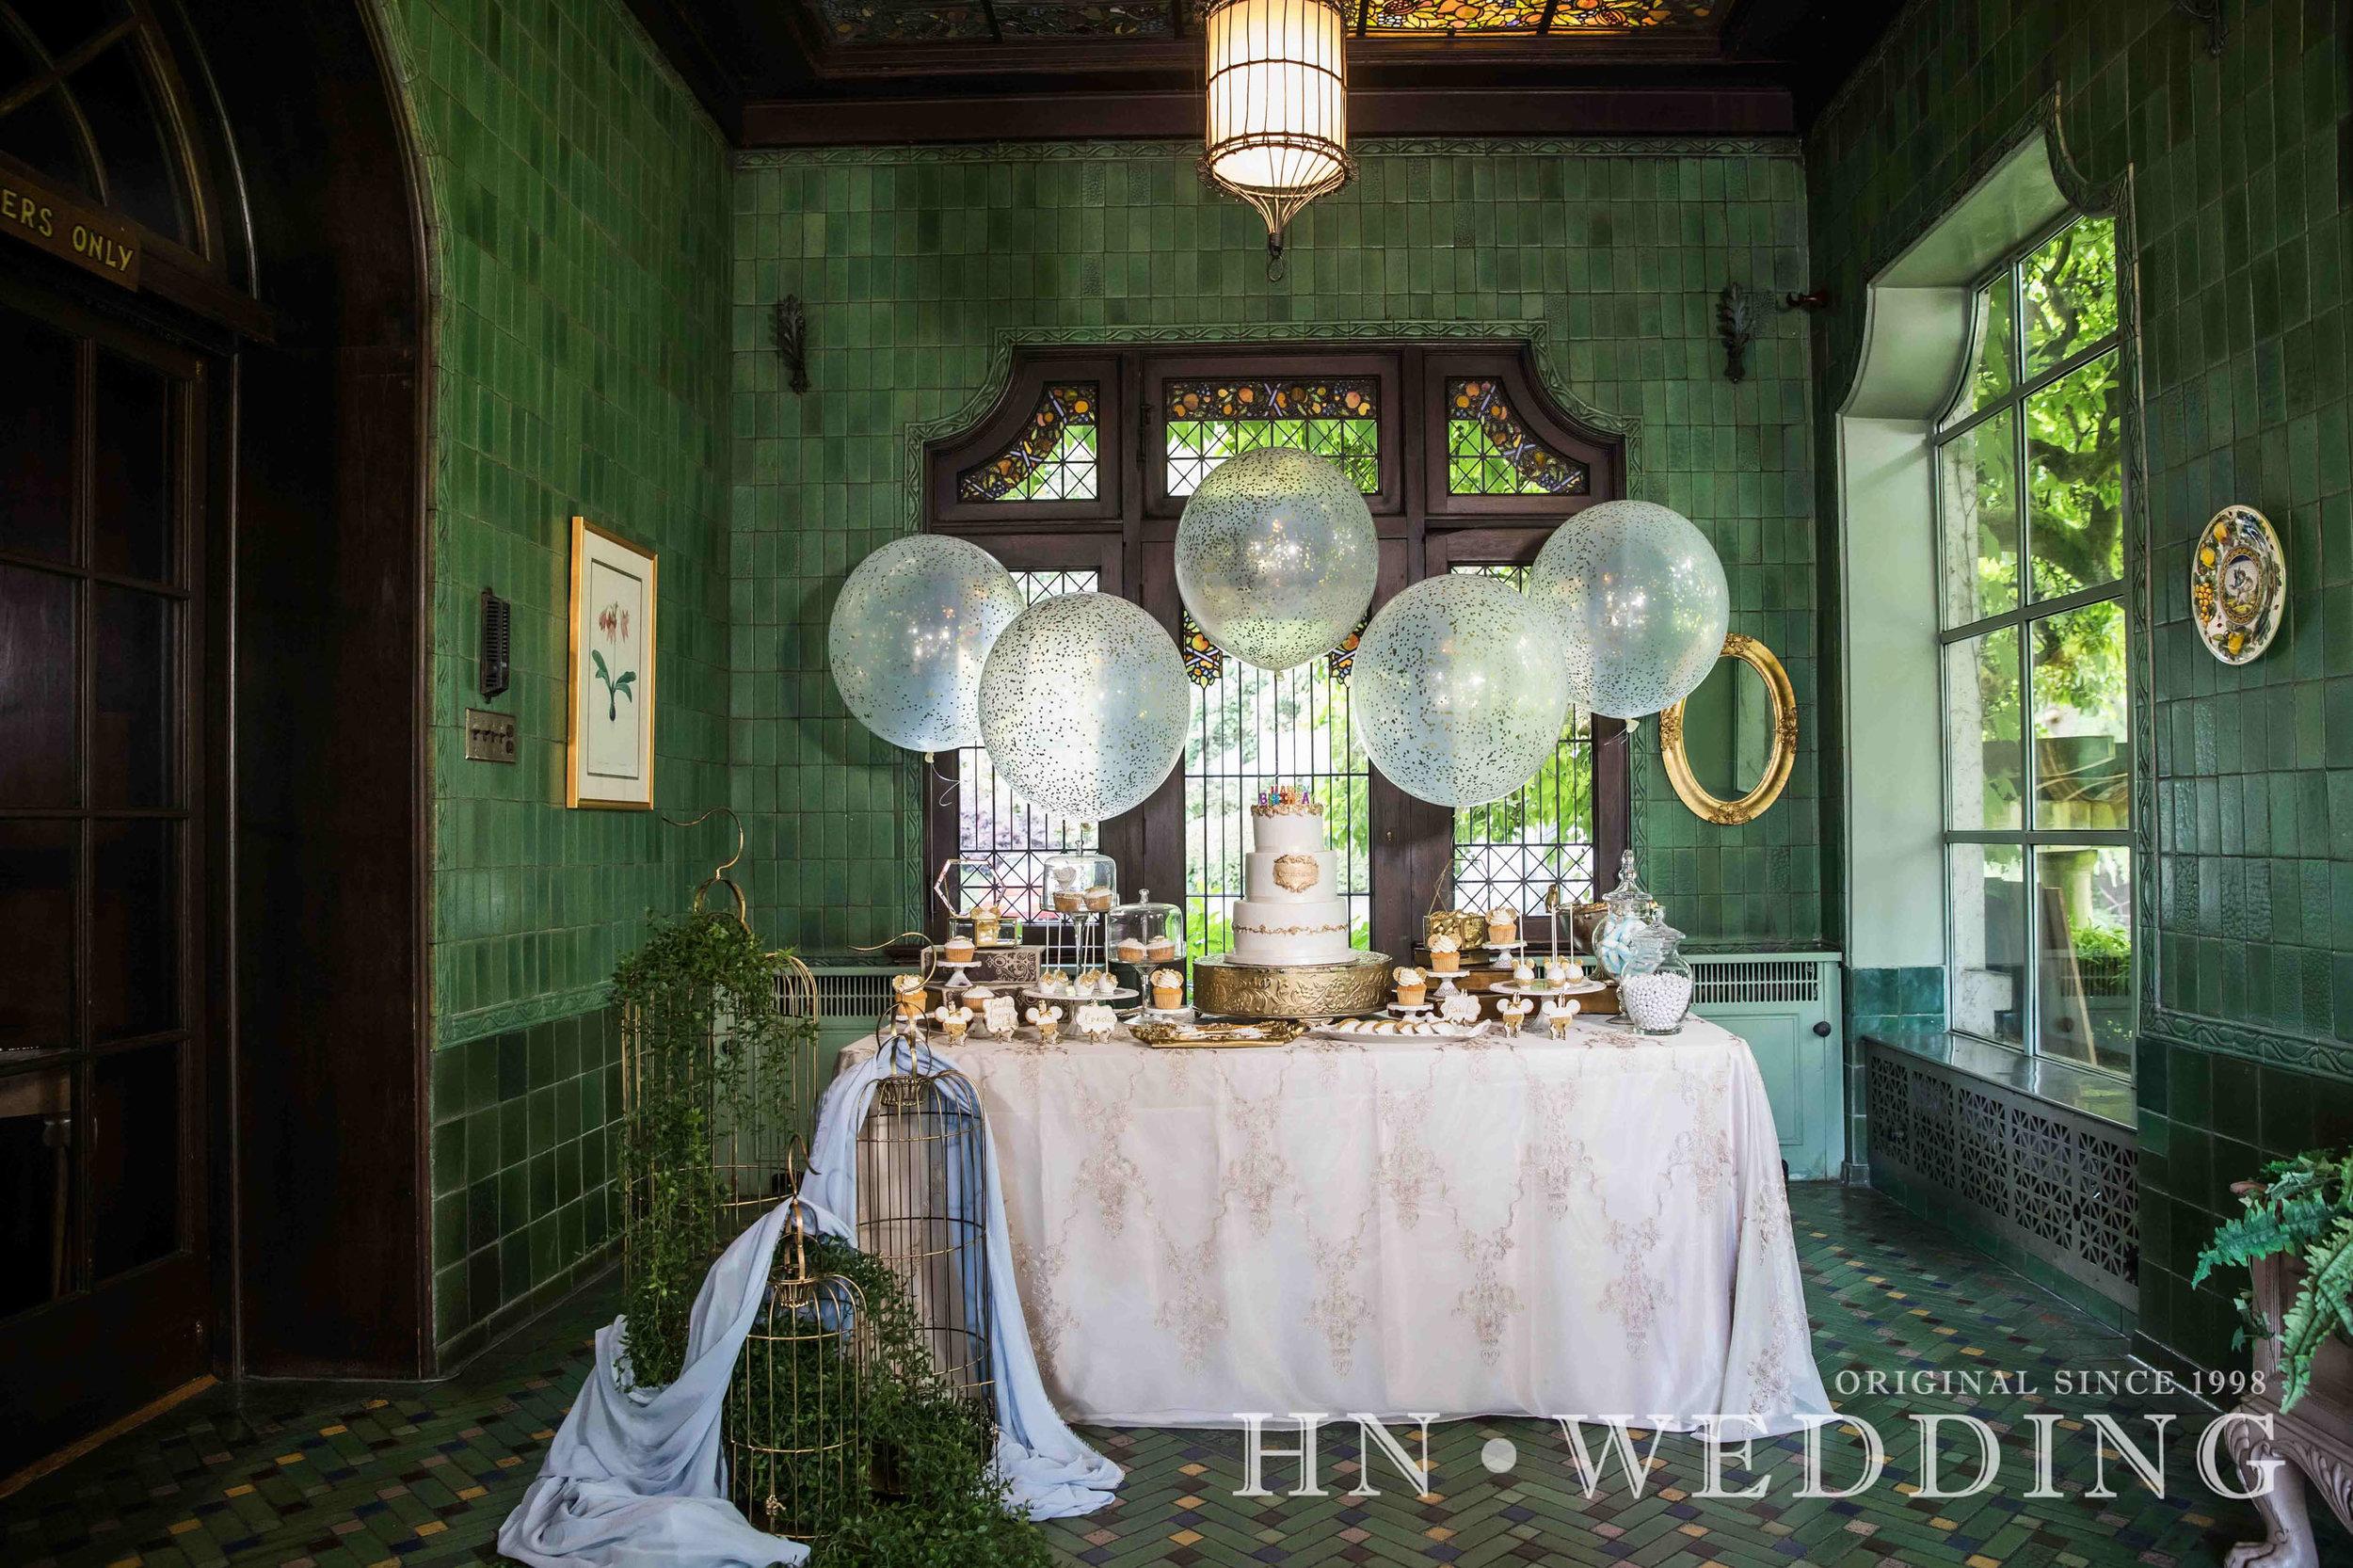 hnweddingweddingday10192018-2-13.jpg